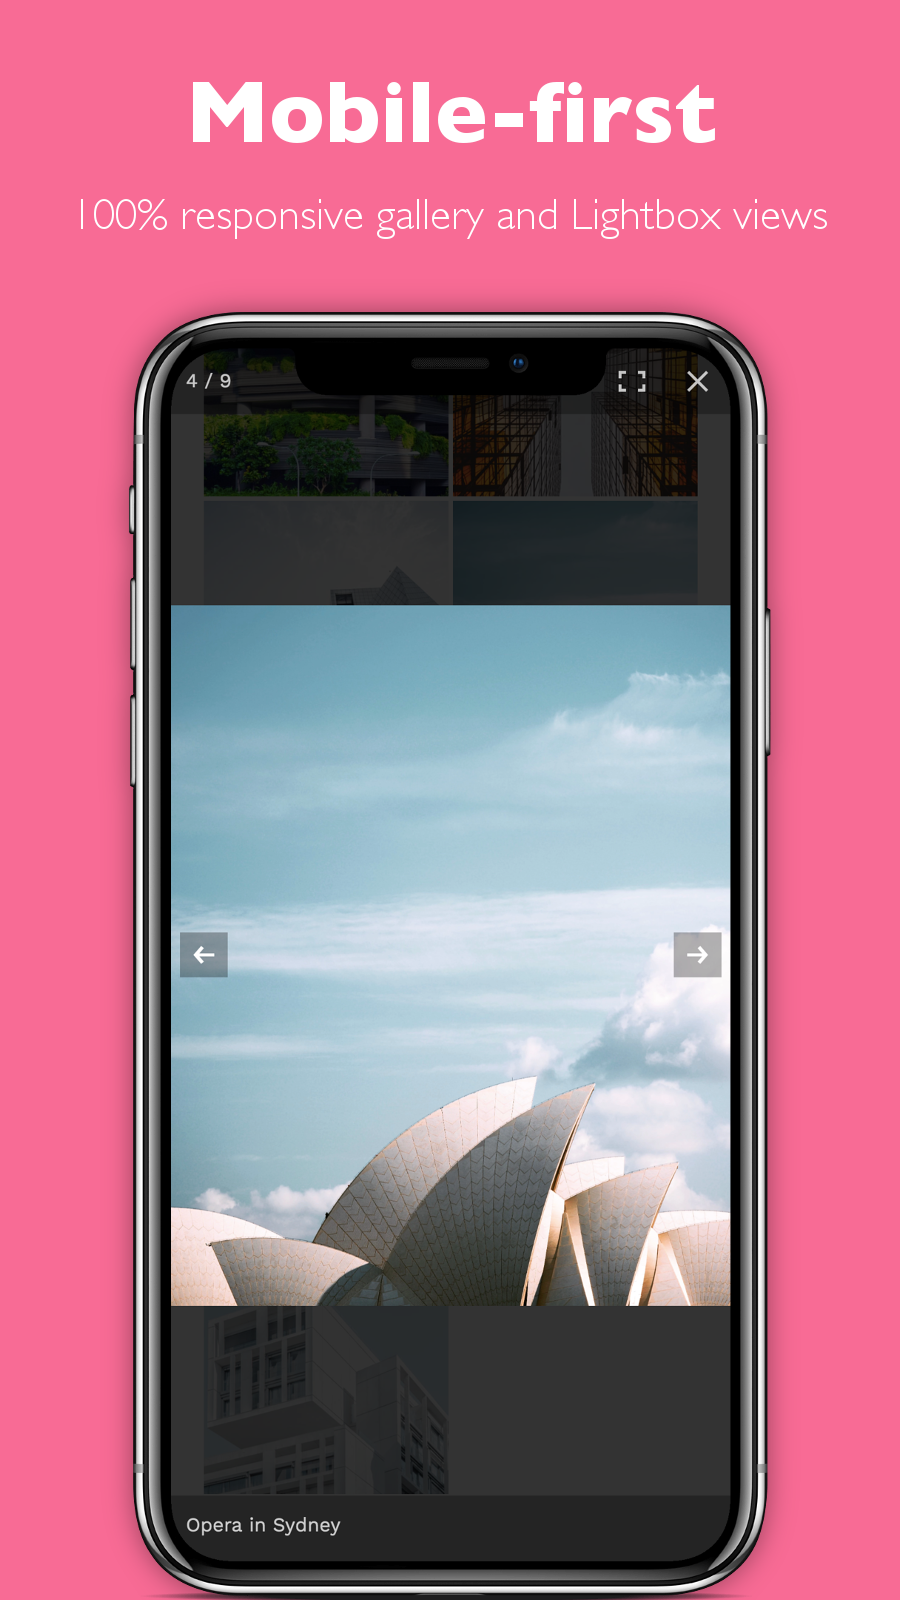 Fully responsive photo gallery and Lightbox views